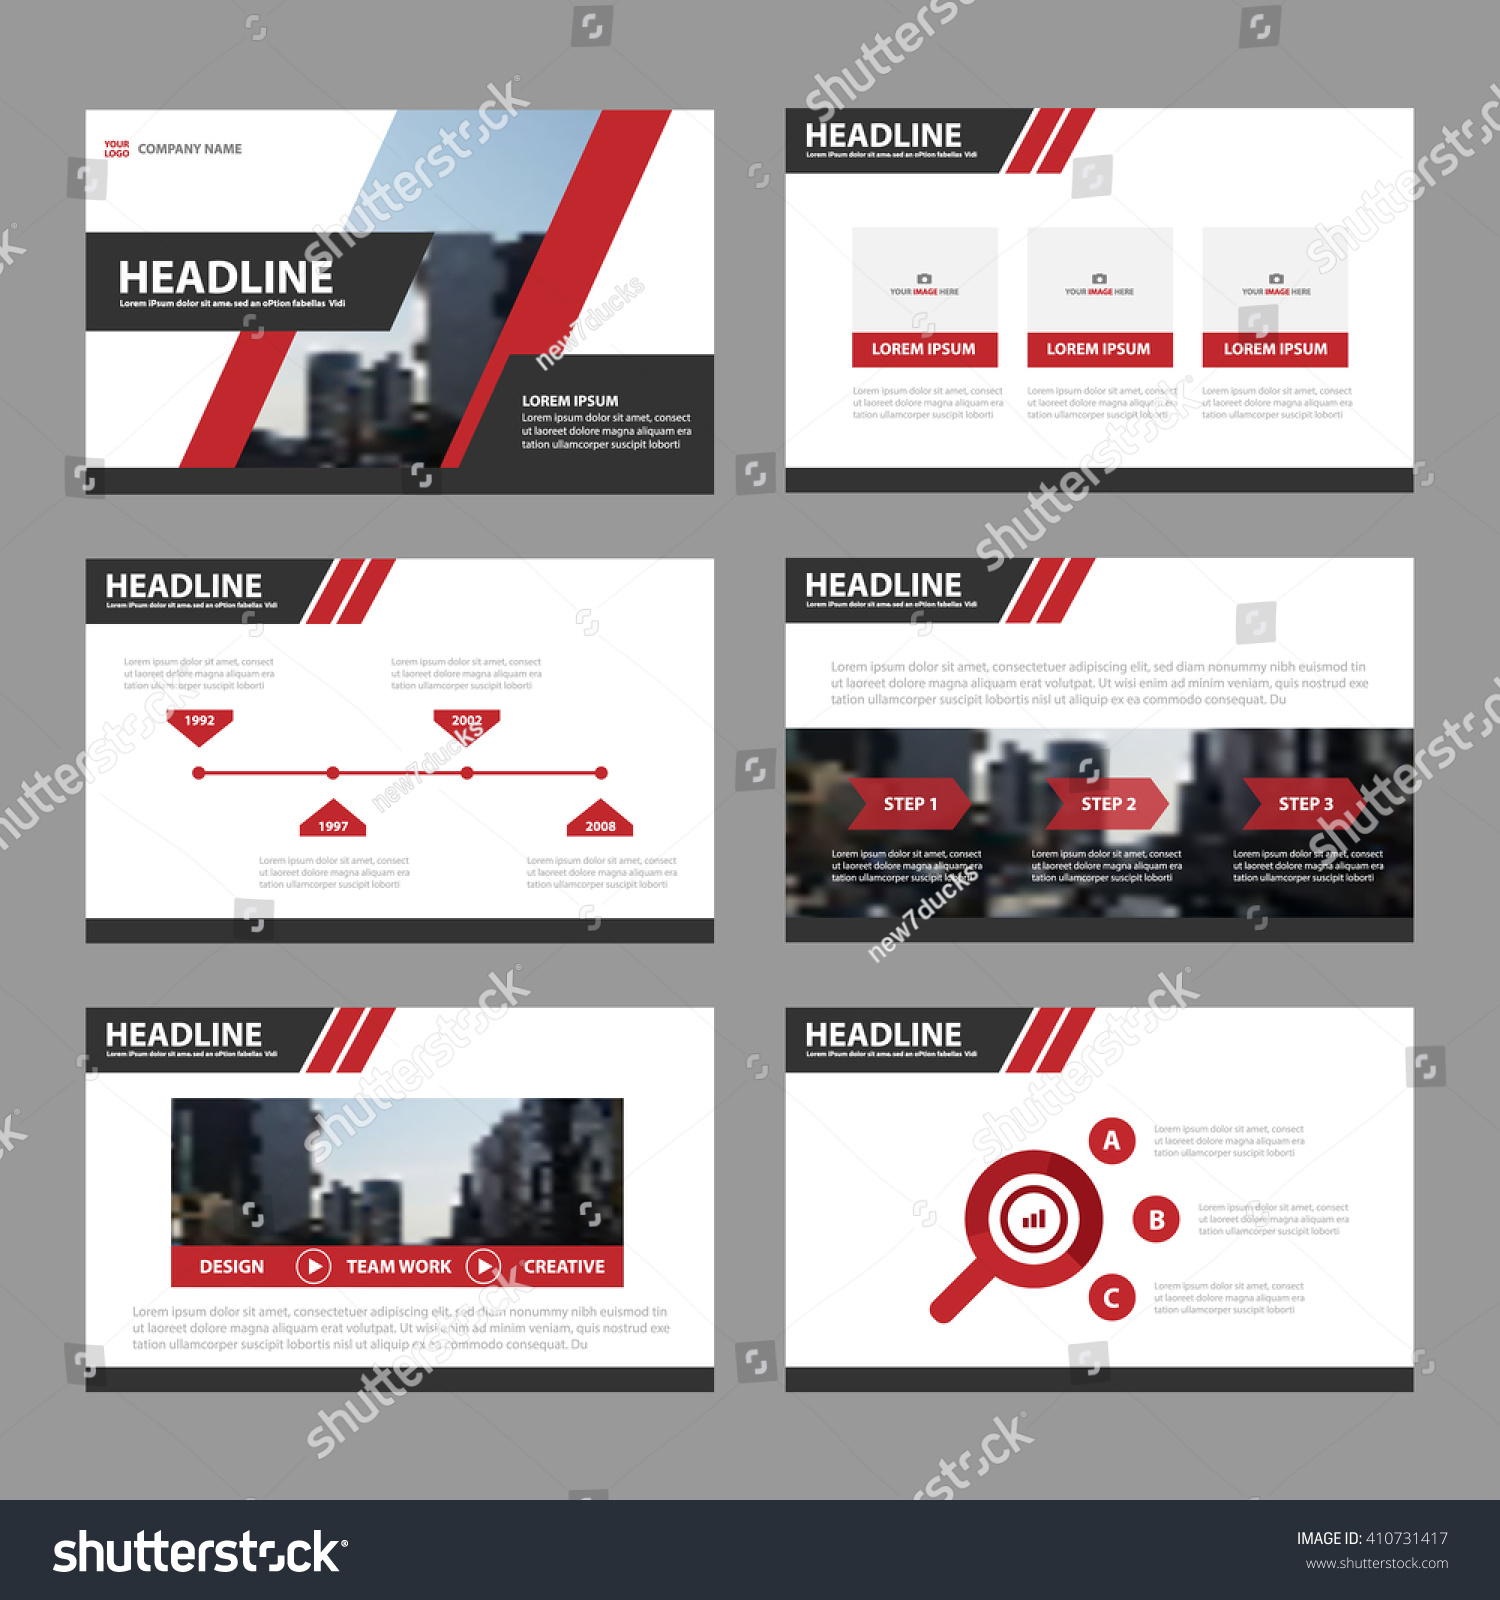 red black presentation templates infographic elements stock vector 410731417 shutterstock. Black Bedroom Furniture Sets. Home Design Ideas